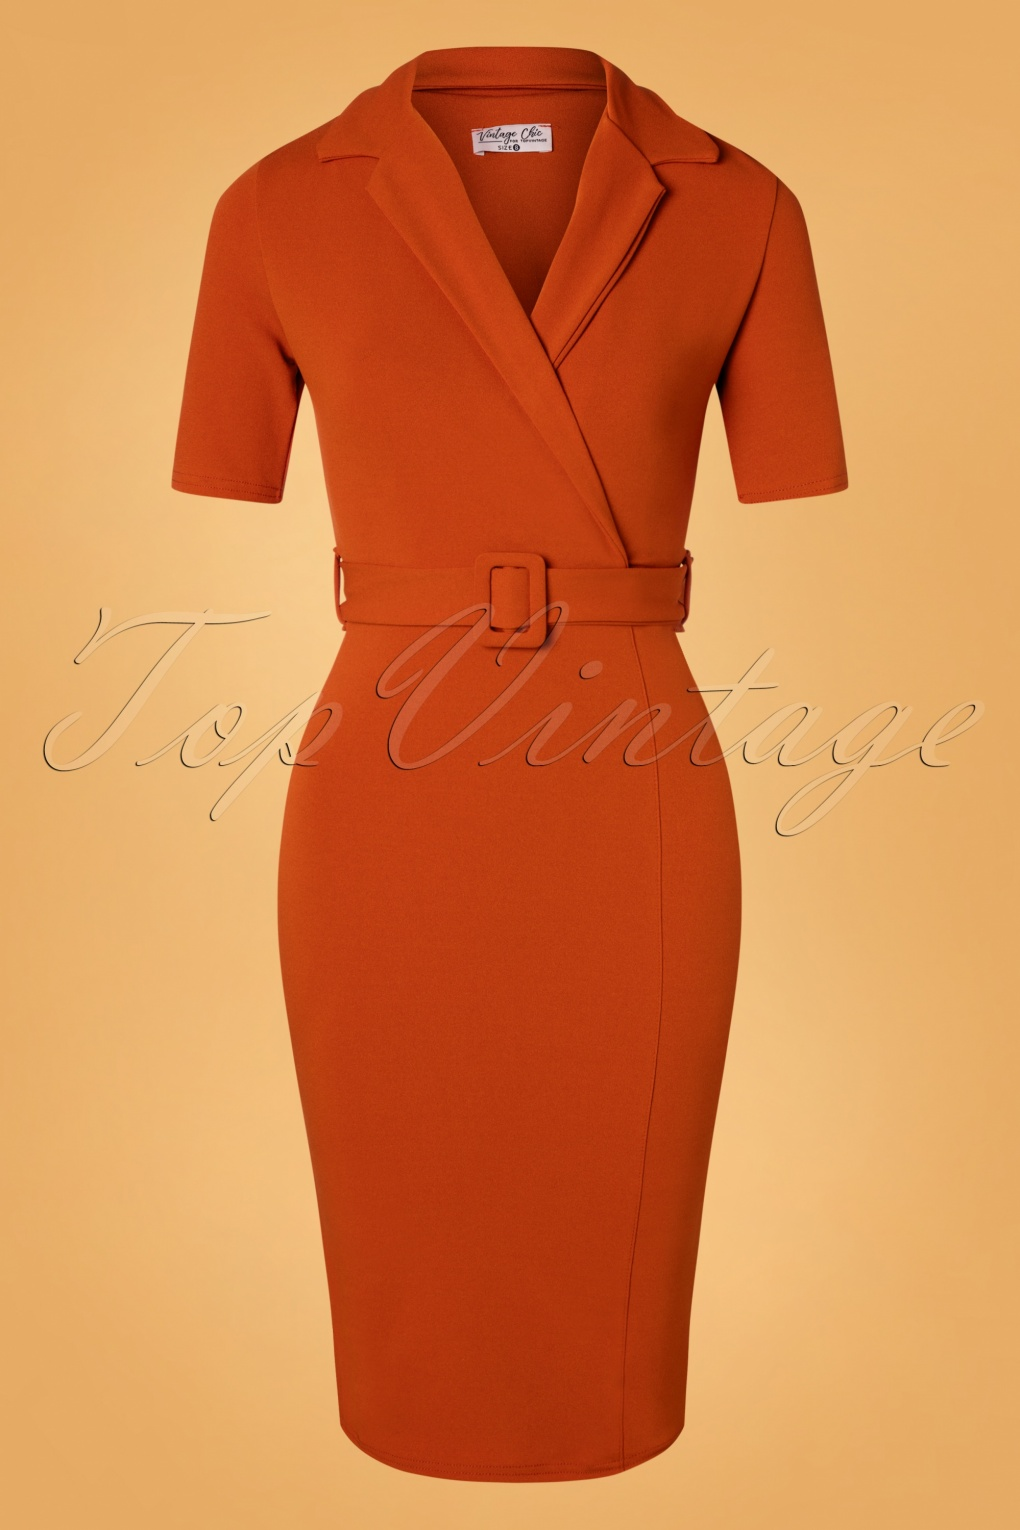 1950s Pencil Dresses & Wiggle Dress Styles 50s Denysa Pencil Dress in Cinnamon £63.22 AT vintagedancer.com